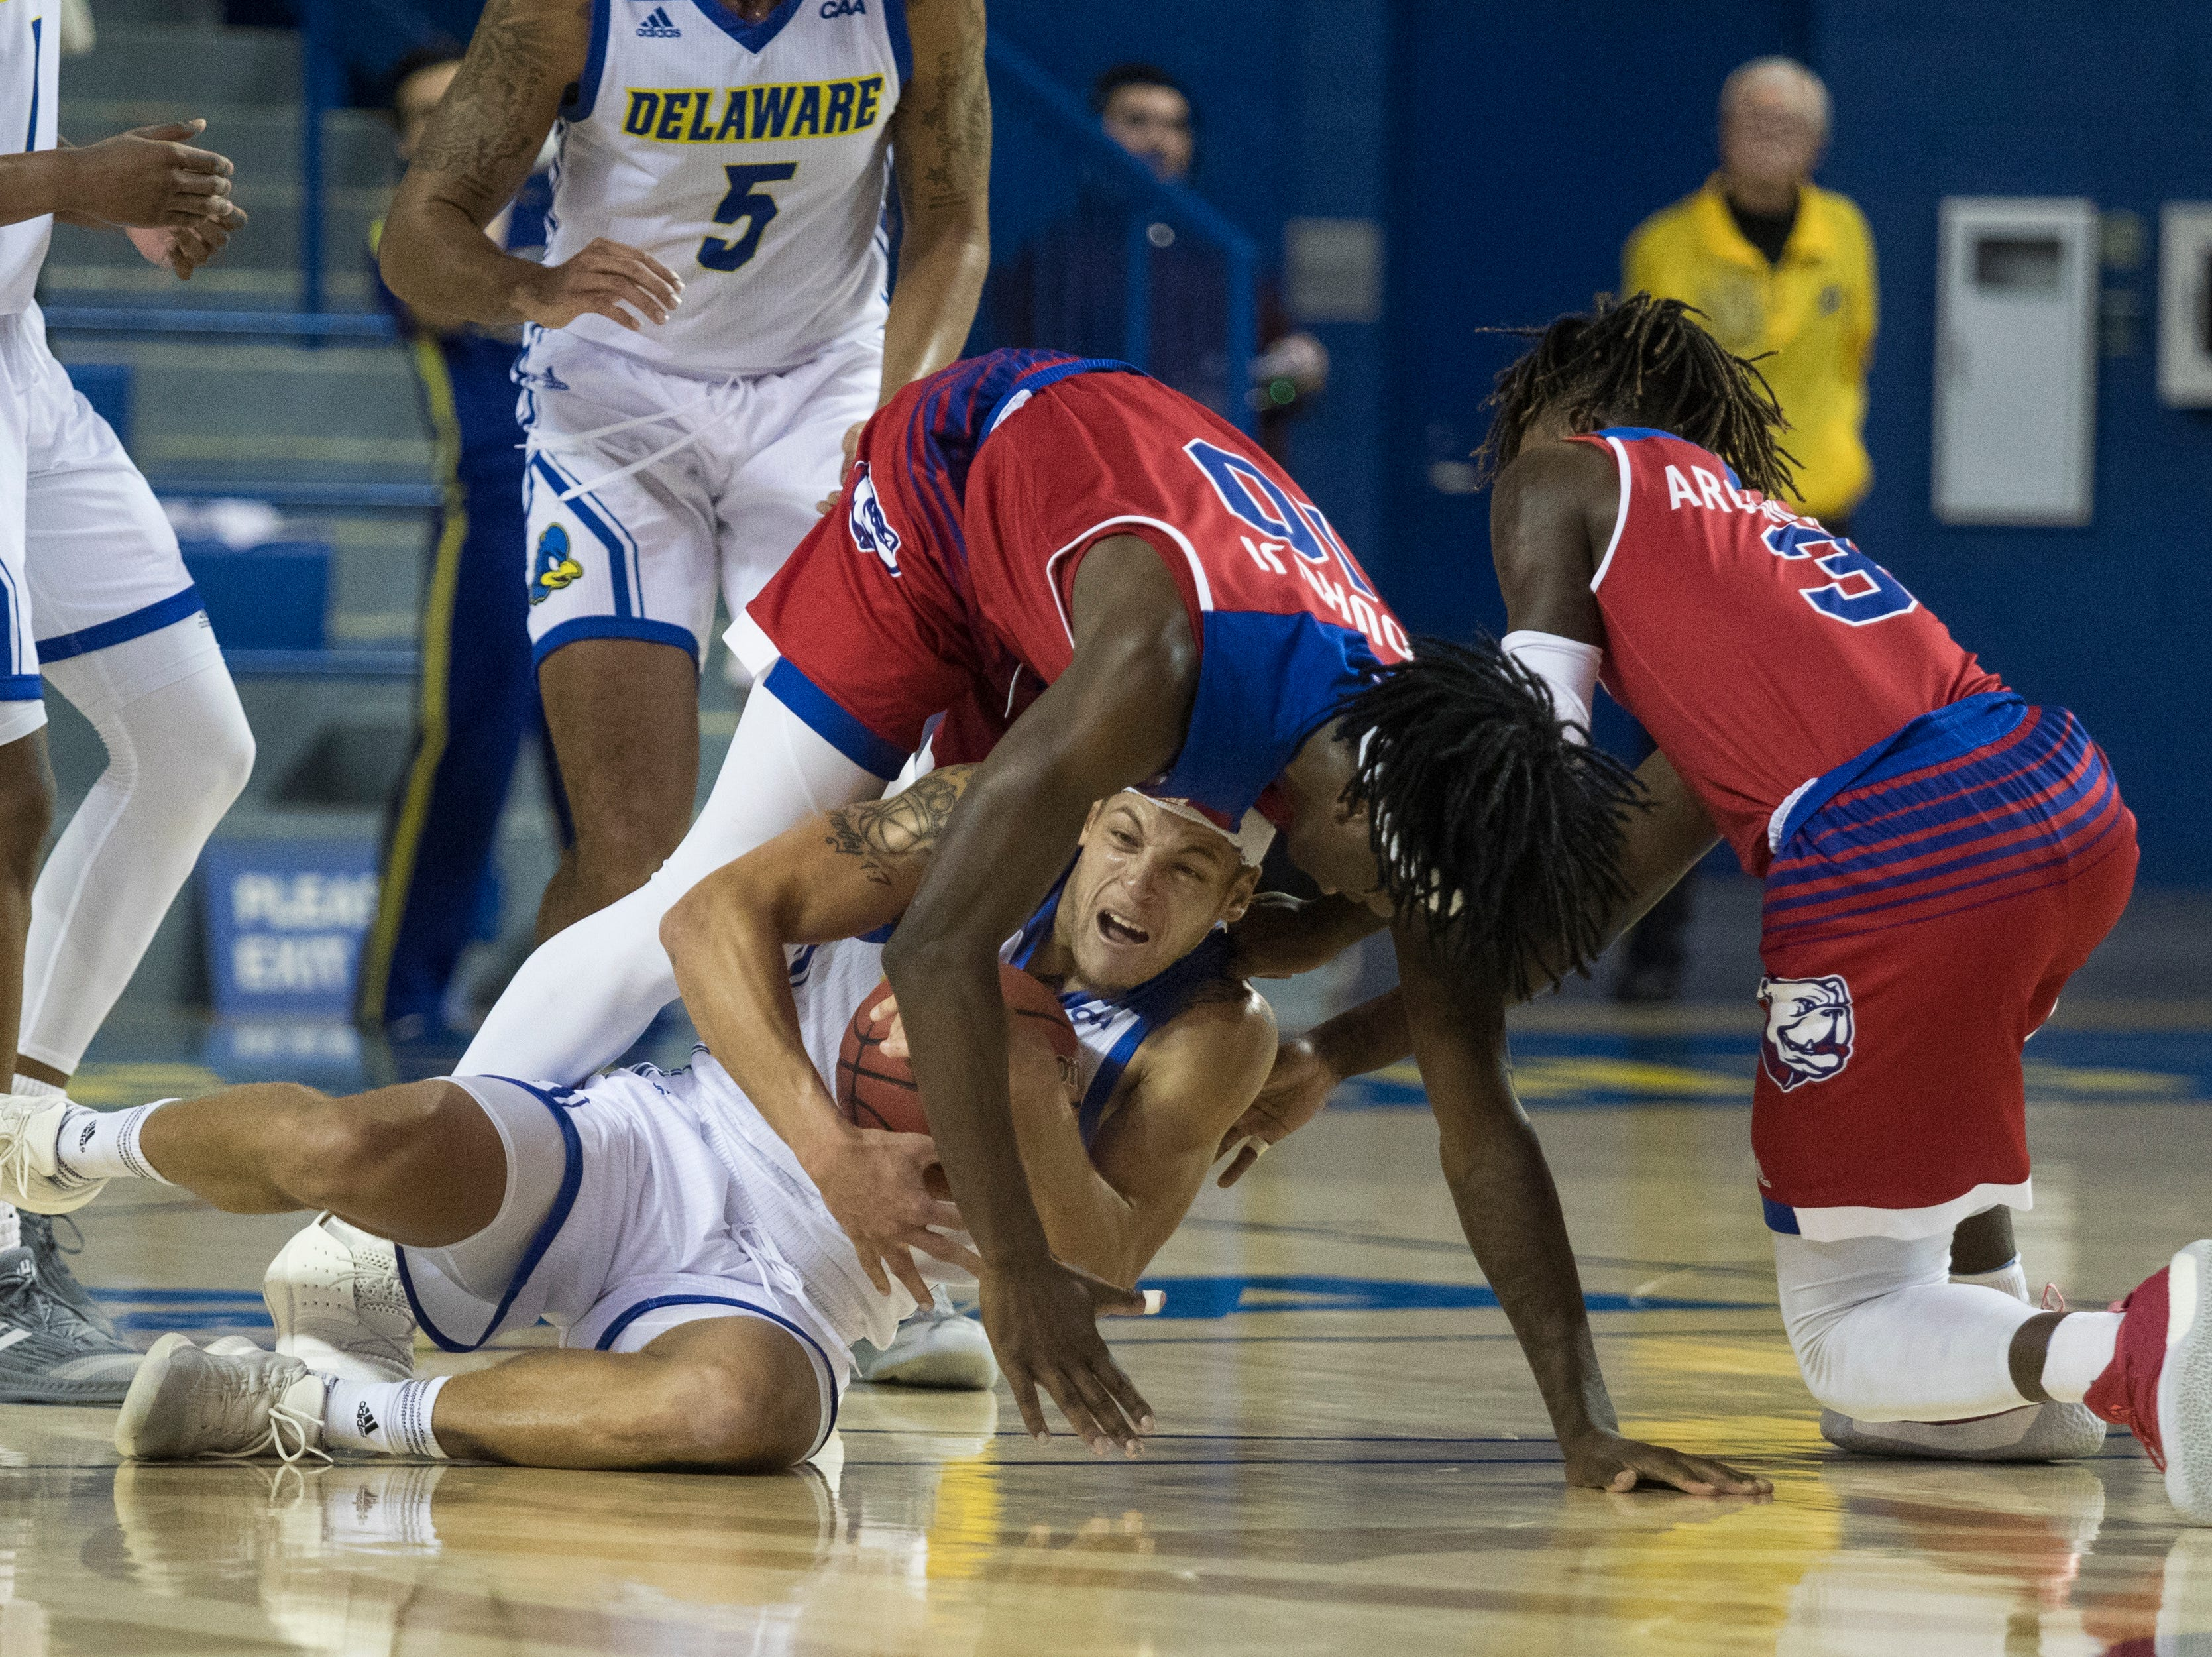 Delaware's Darian Bryant fights for possession against Louisiana Tech's Anthony Duruji (10) and Amorie Archibald (3) Monday at the Bob Carpenter Center. Delaware defeated Louisiana Tech 75-71.